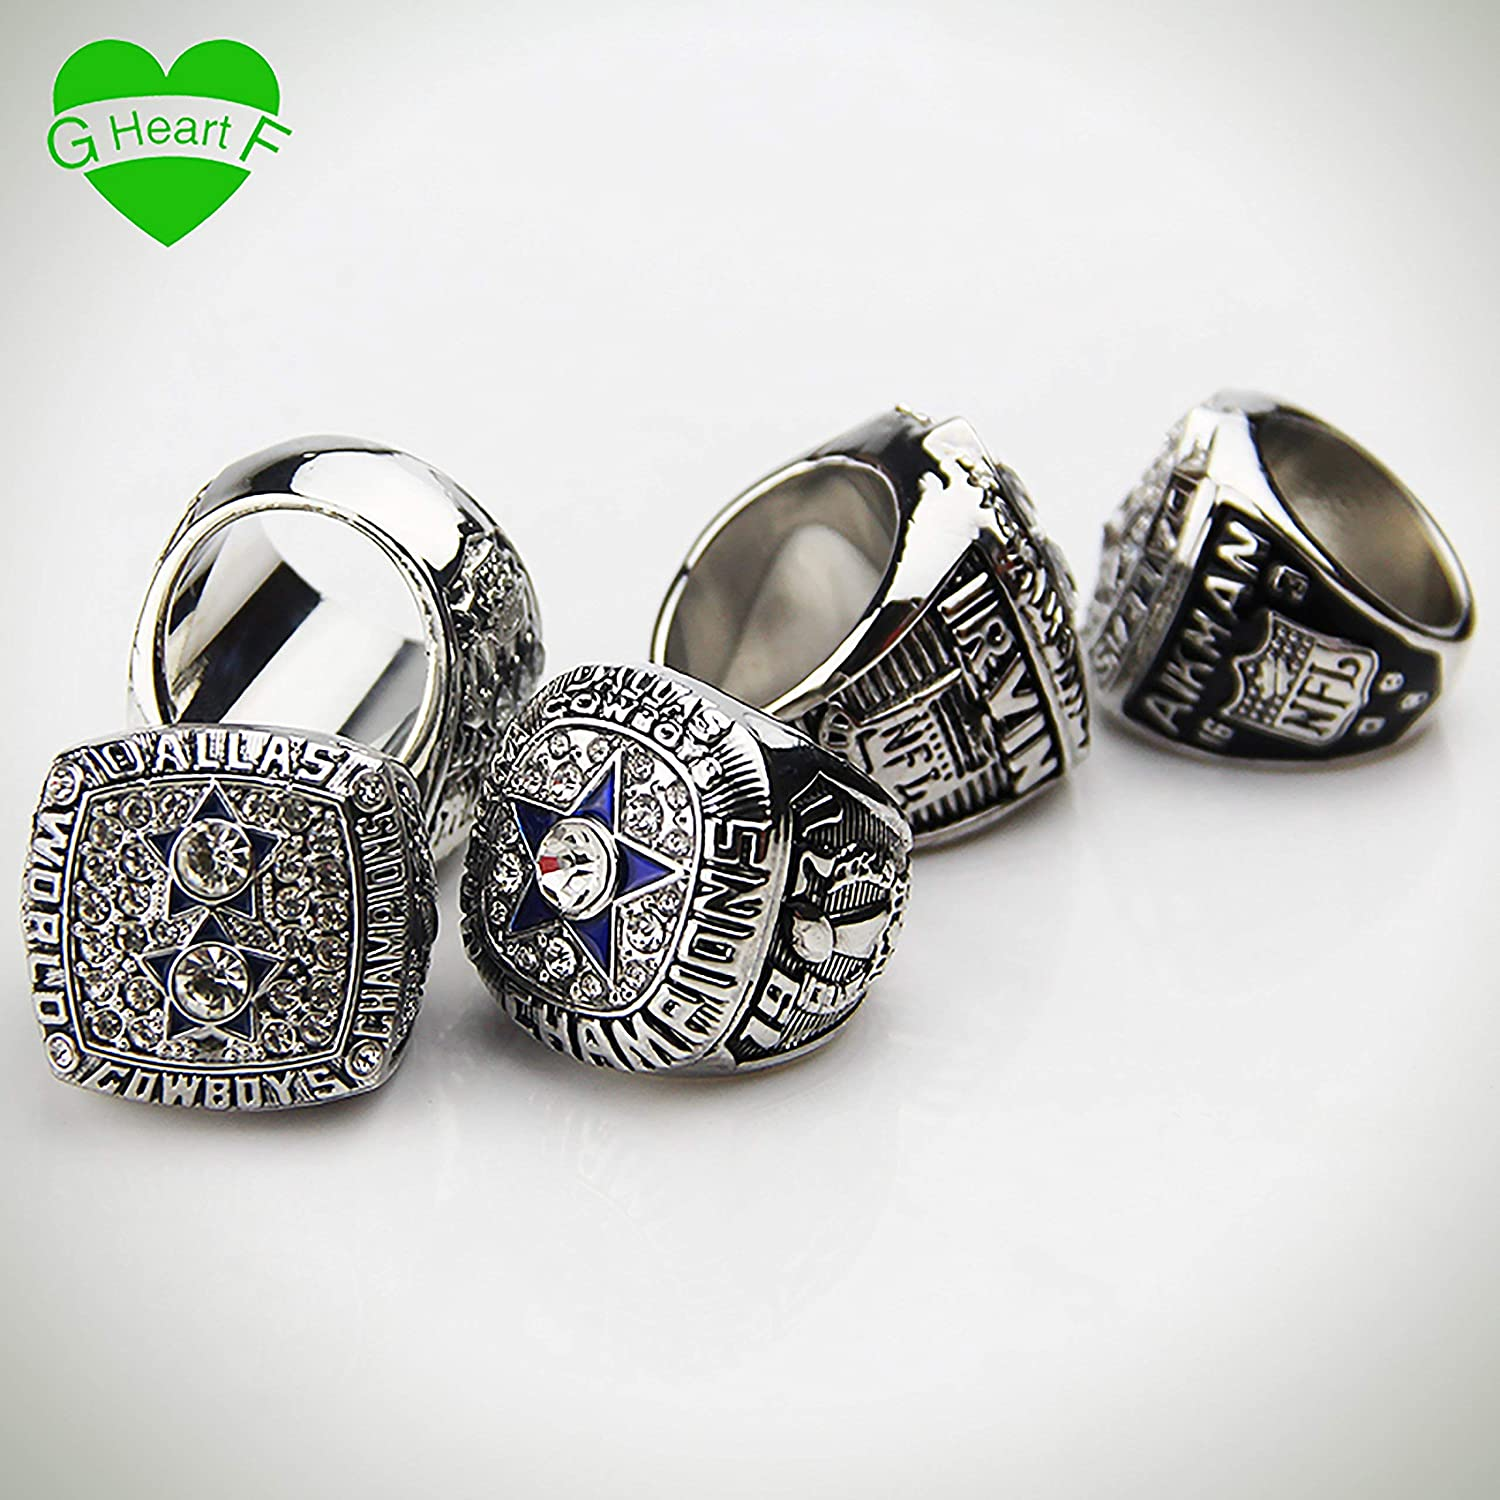 GF-sports store Dallas Cowboys Supper Bowl Championship Rings Display Box Full Set Replica B07D7M6H5C/_US